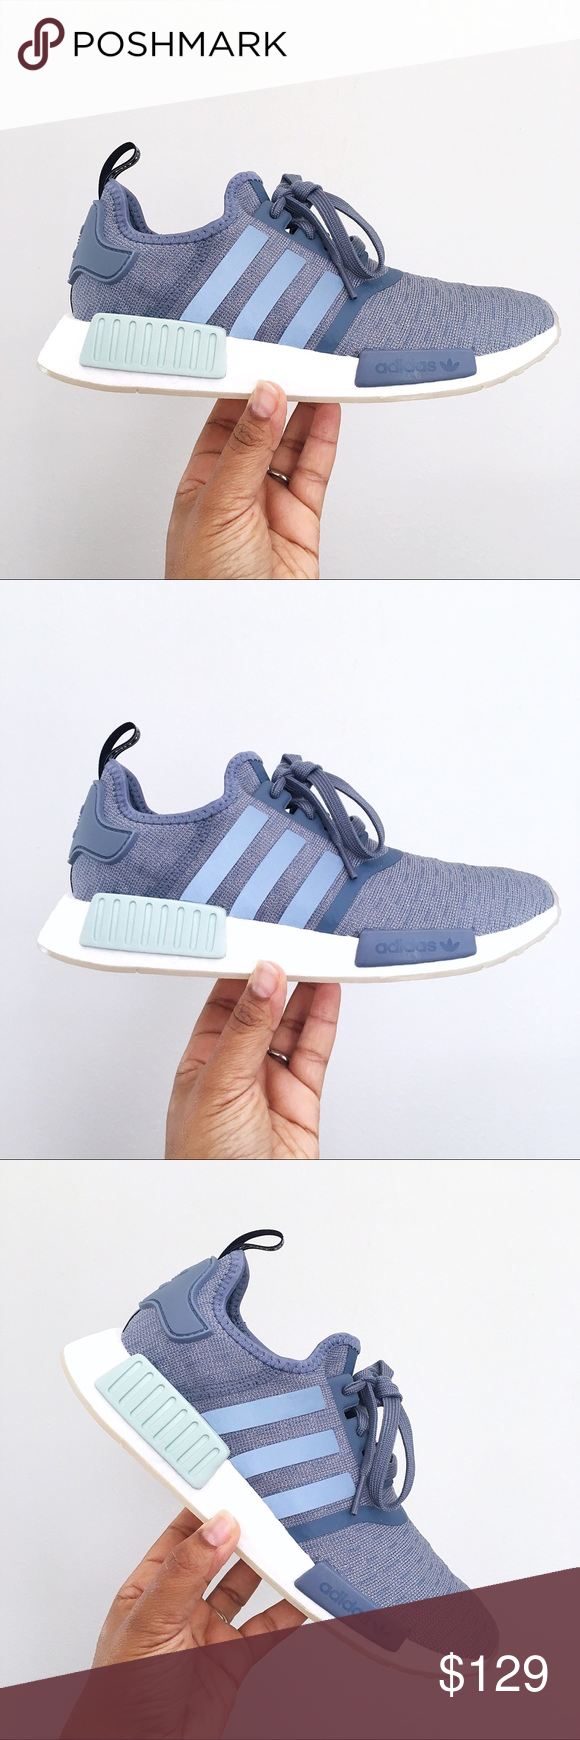 b55a161ba Adidas NMD R1 Blue Raw Steel   Cloud White Women Brand New in Box with Lid  🙌🏽 - Beautiful and extremely comfortable Steel Cloud White Blue Adidas  NMD R2 ...